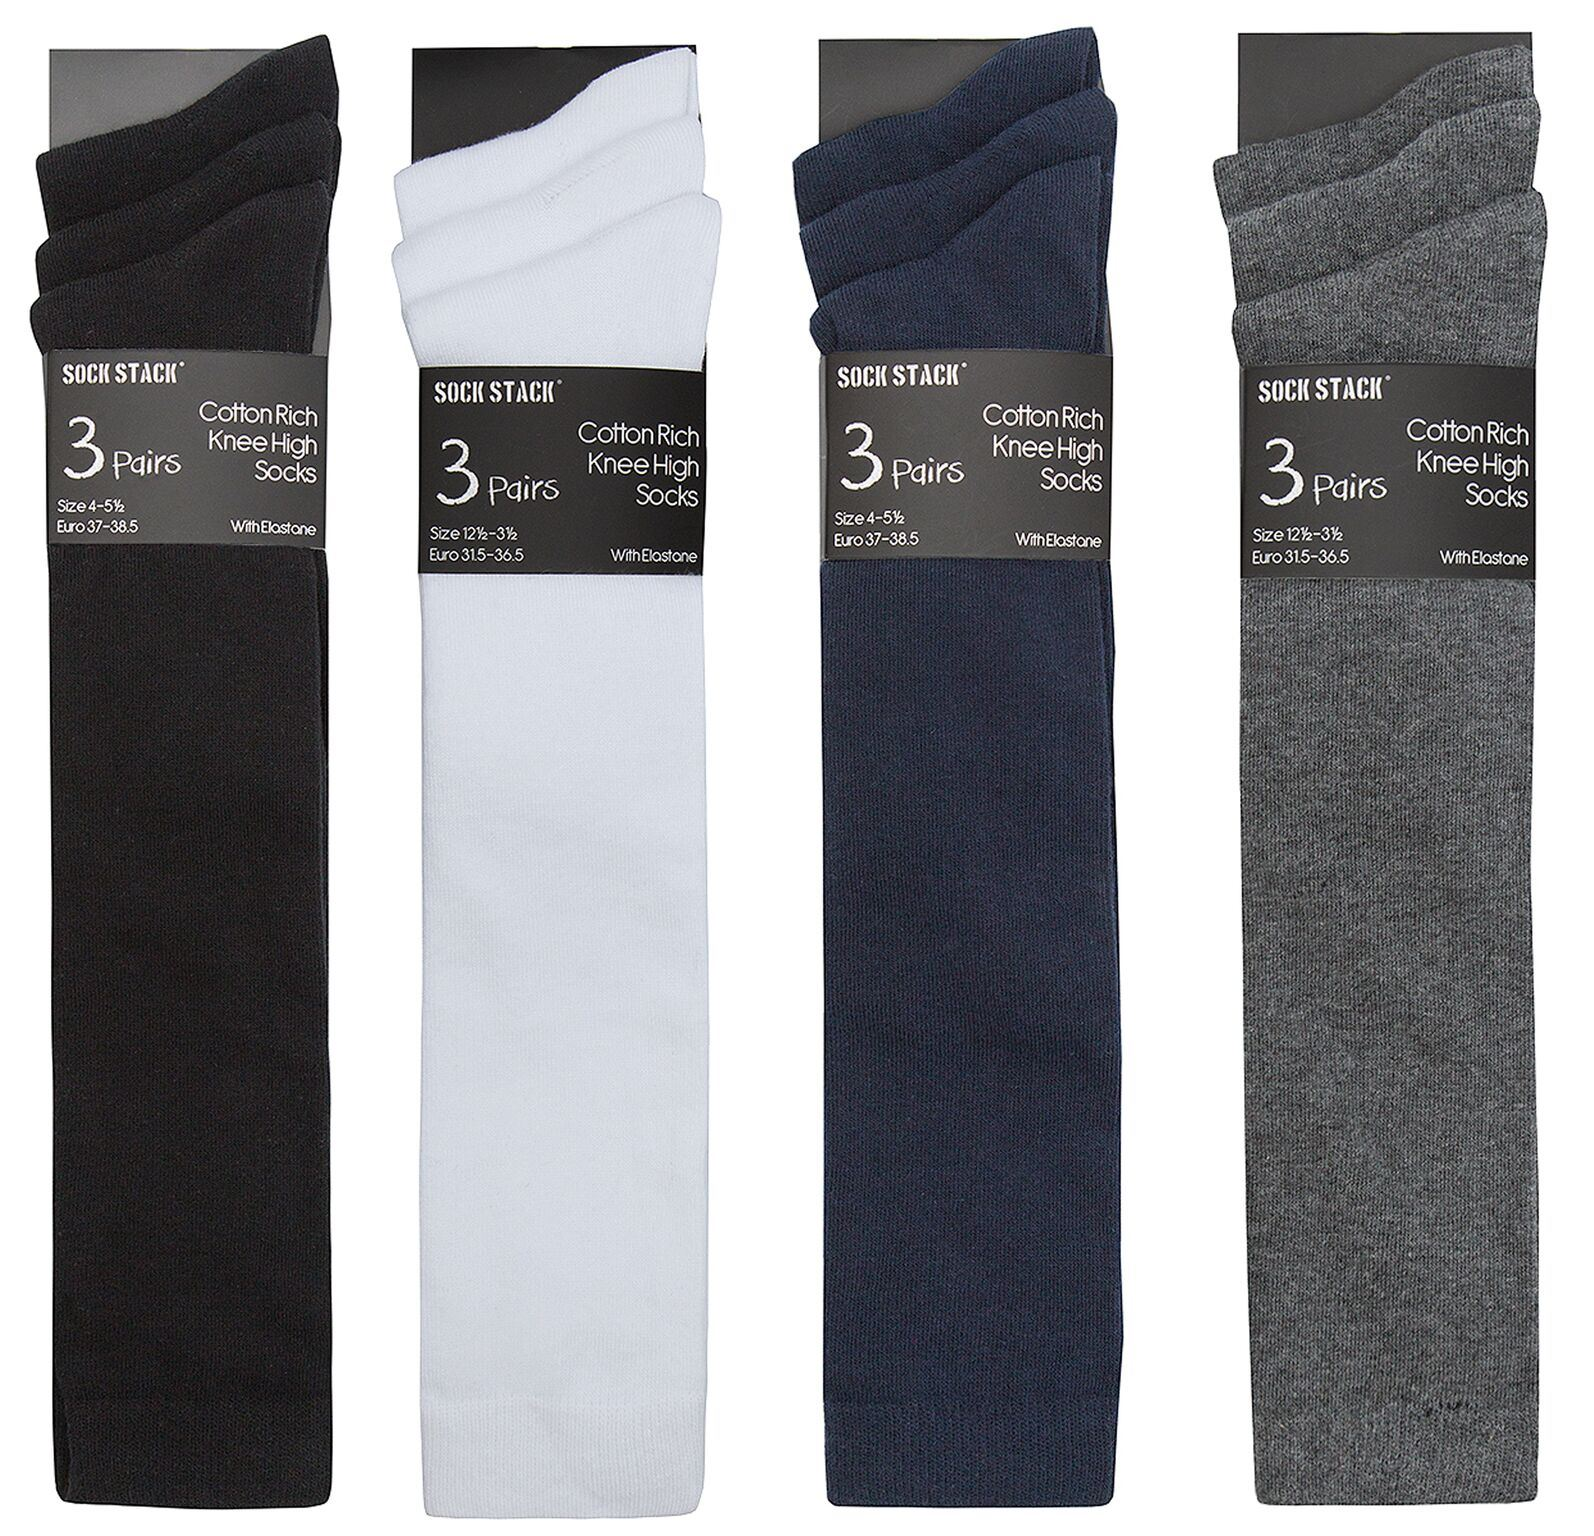 12 Pairs Grey Knee High School Socks Size 6-9 39-42